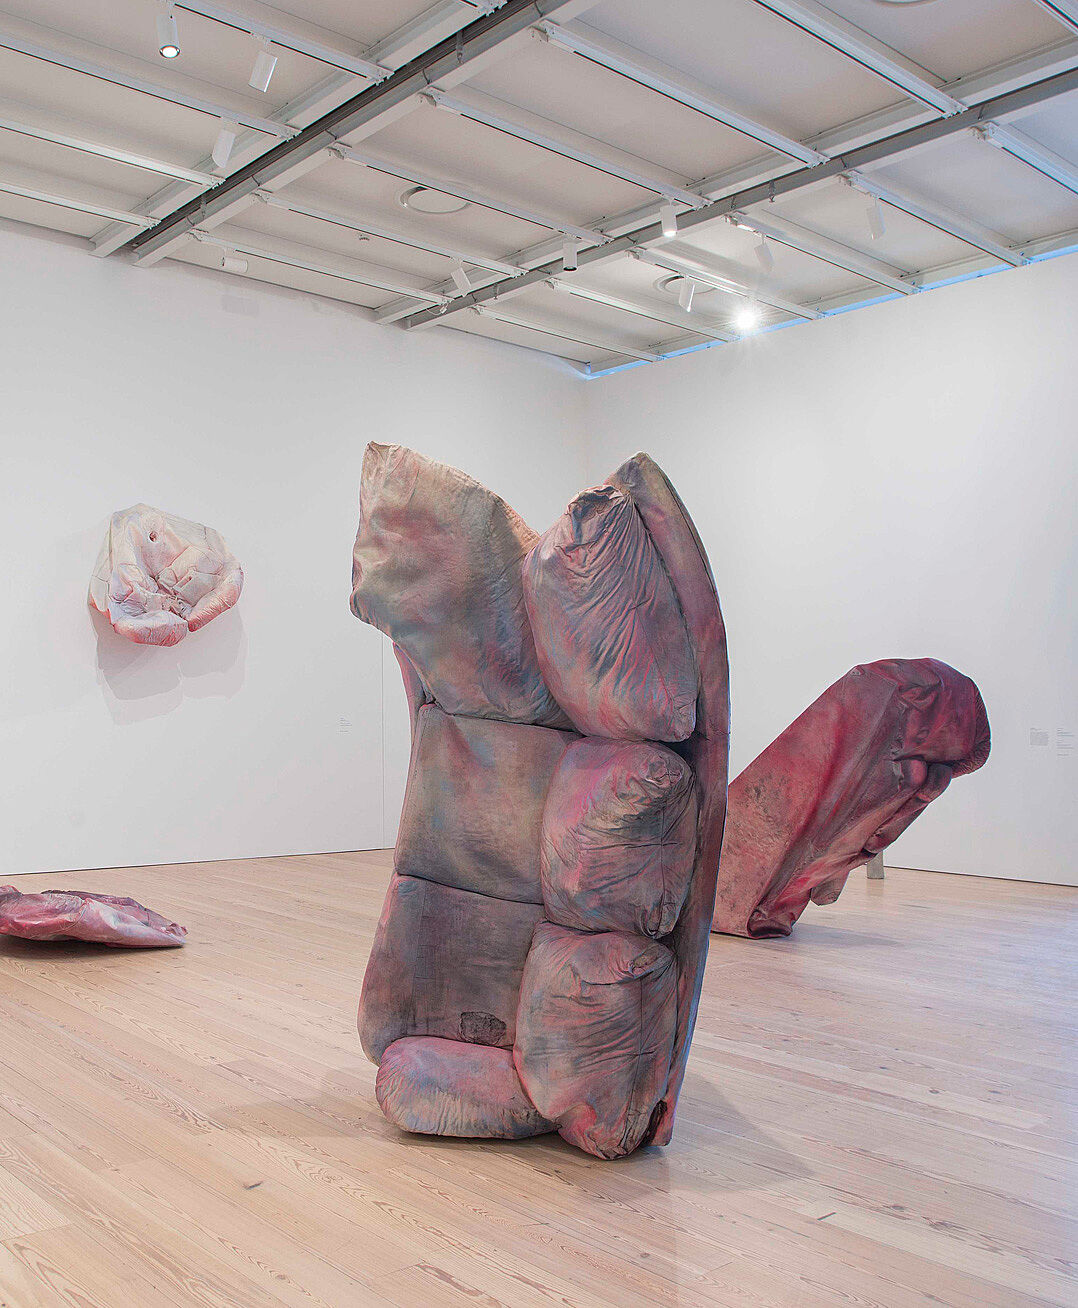 Abstract pink sculptures hanging in a corner